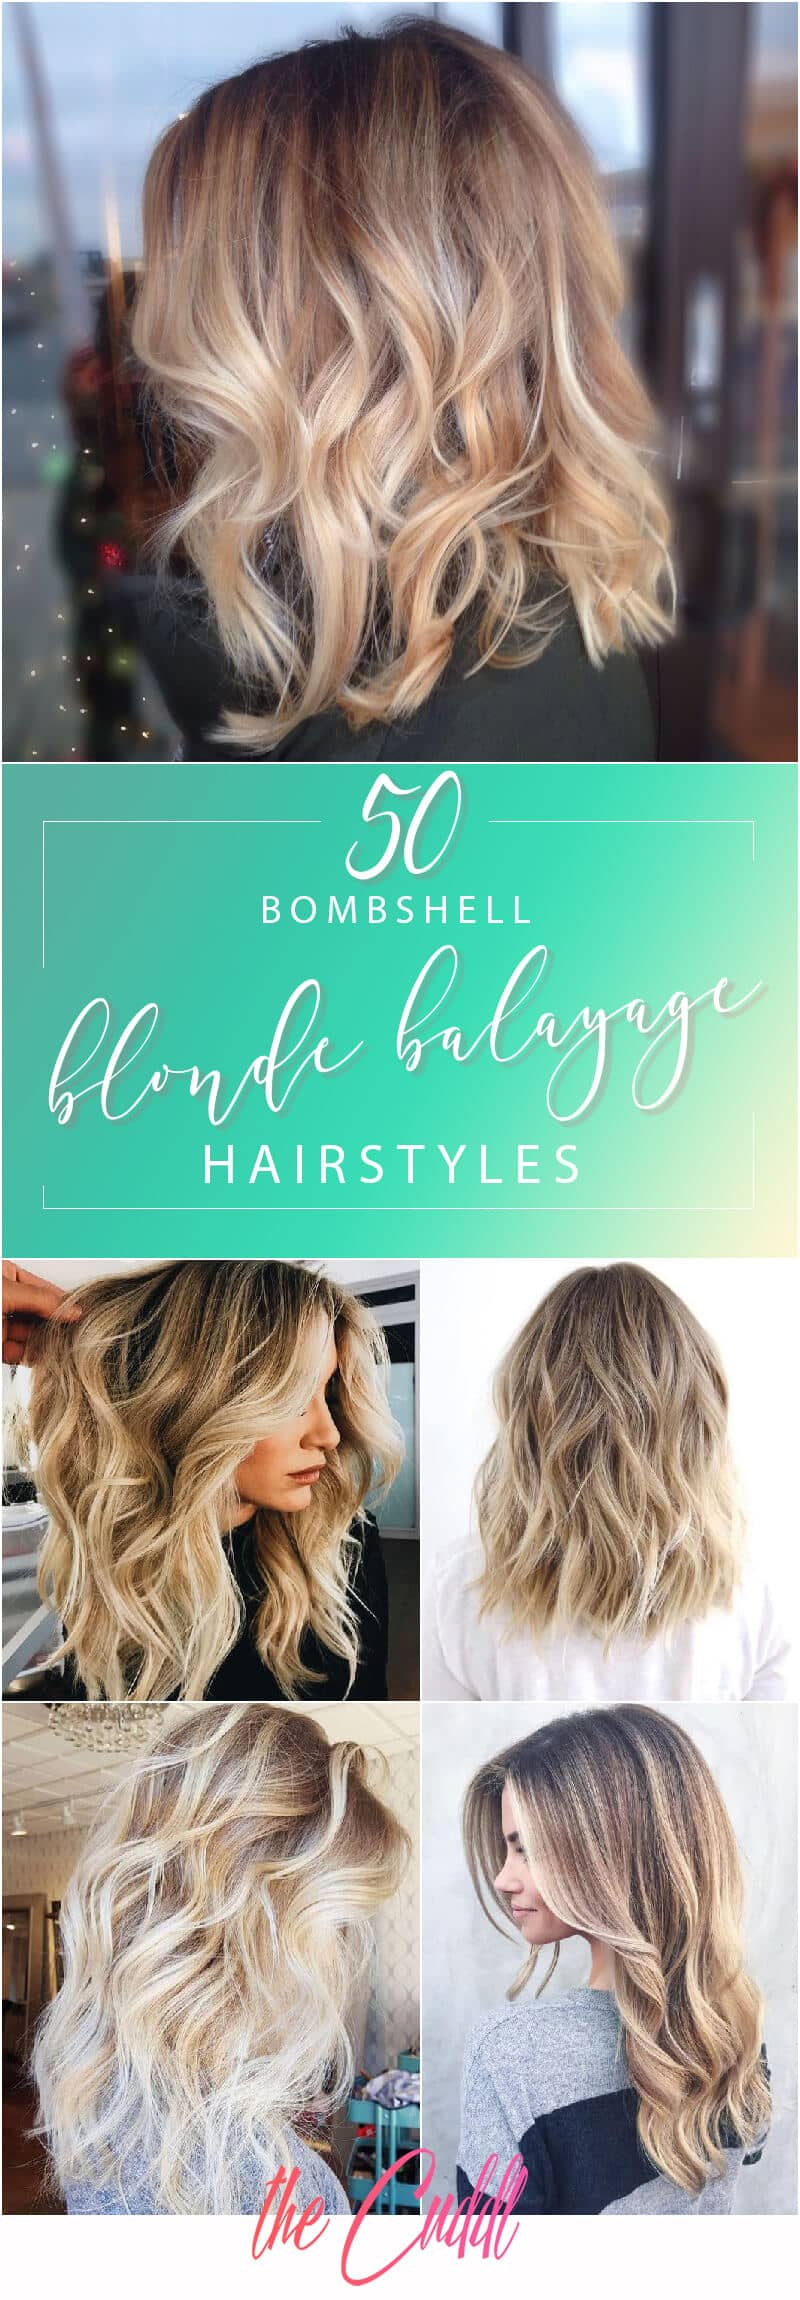 50 Bombshell Blonde Balayage Hairstyles that are Cute Easy Hairstyles for 2018 Hair Ideas